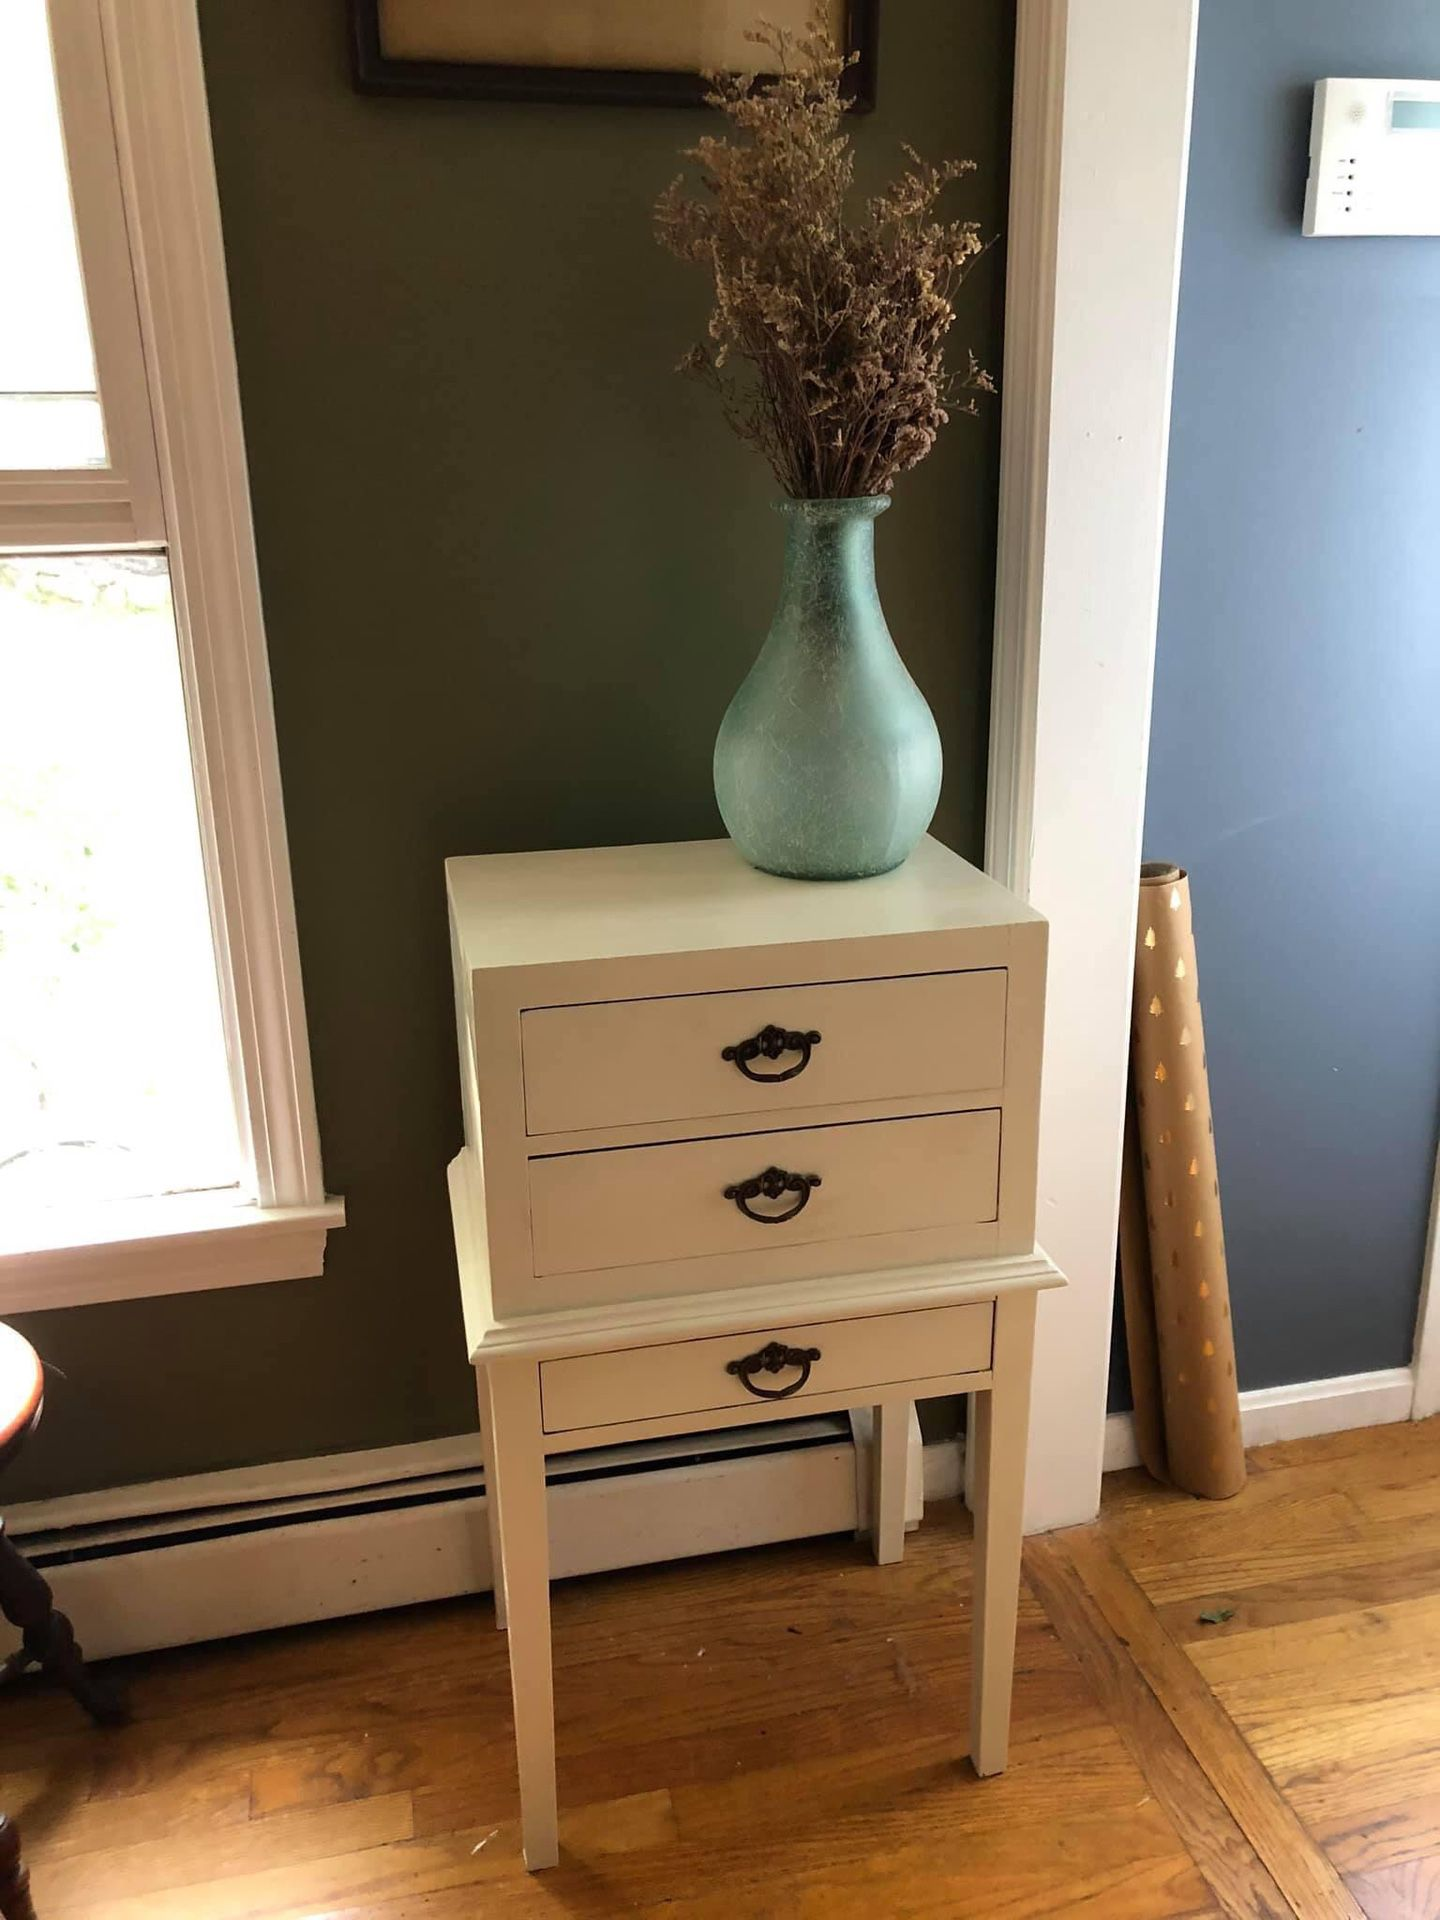 Felt lined jewelry chest